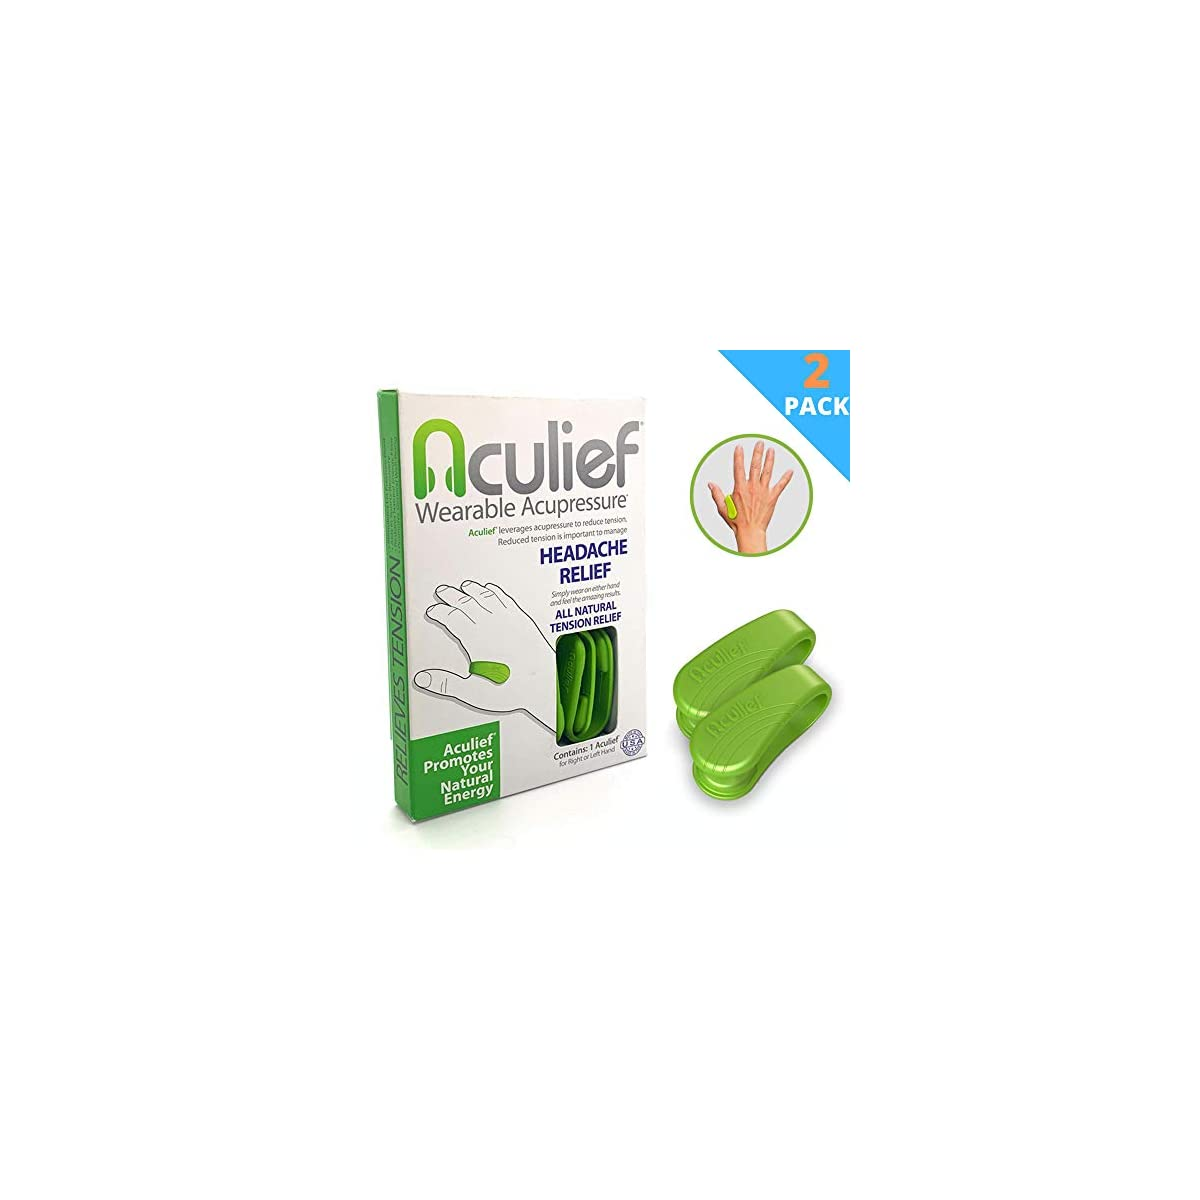 Aculief - Award Winning Natural Headache, Migraine and ...